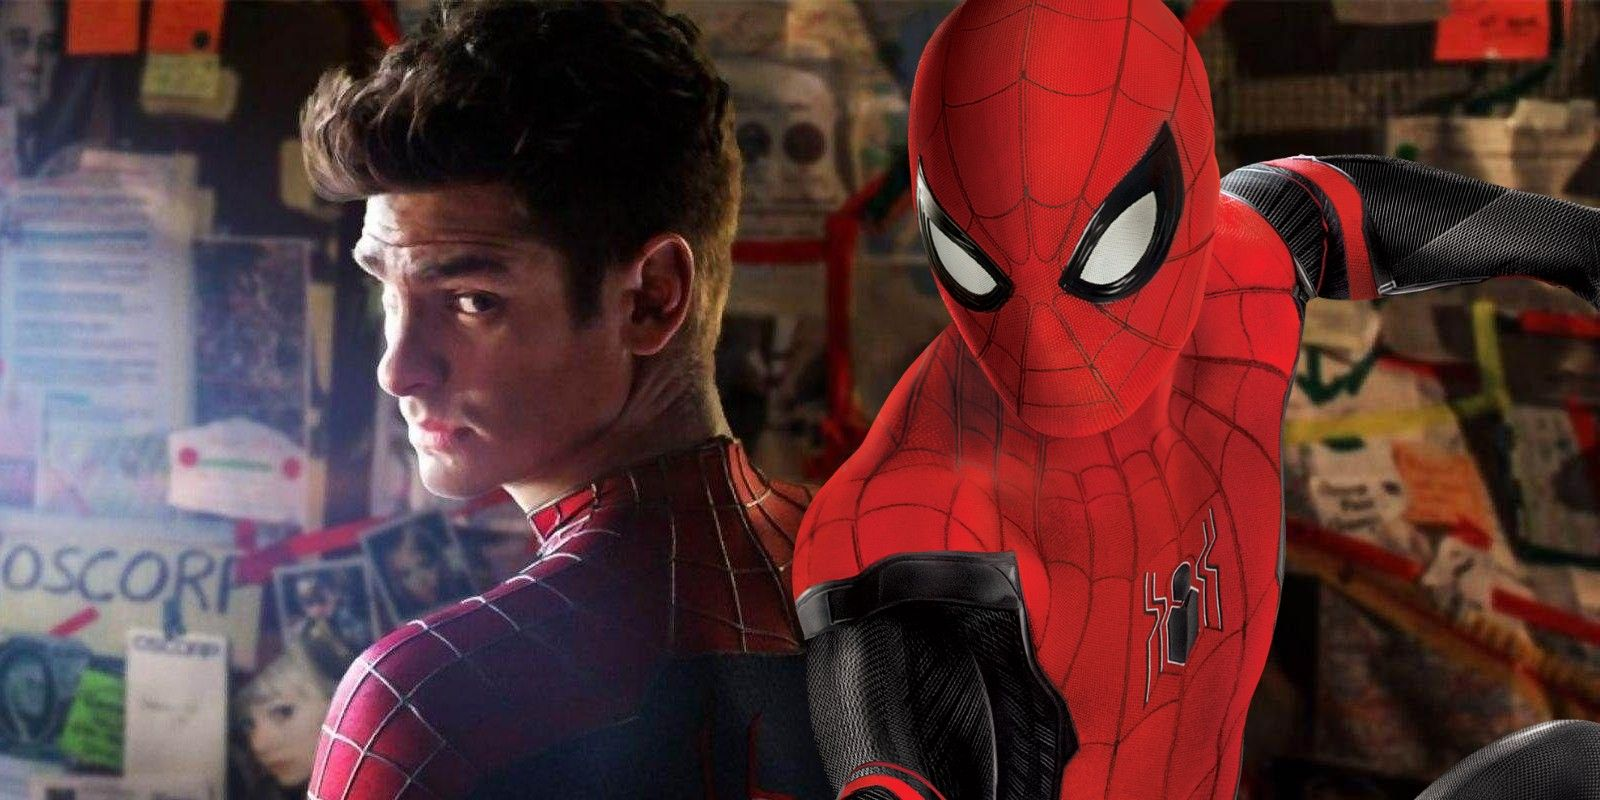 MCU's Spider-Man 3 Reportedly Bringing Back Andrew Garfield For Spider-Verse